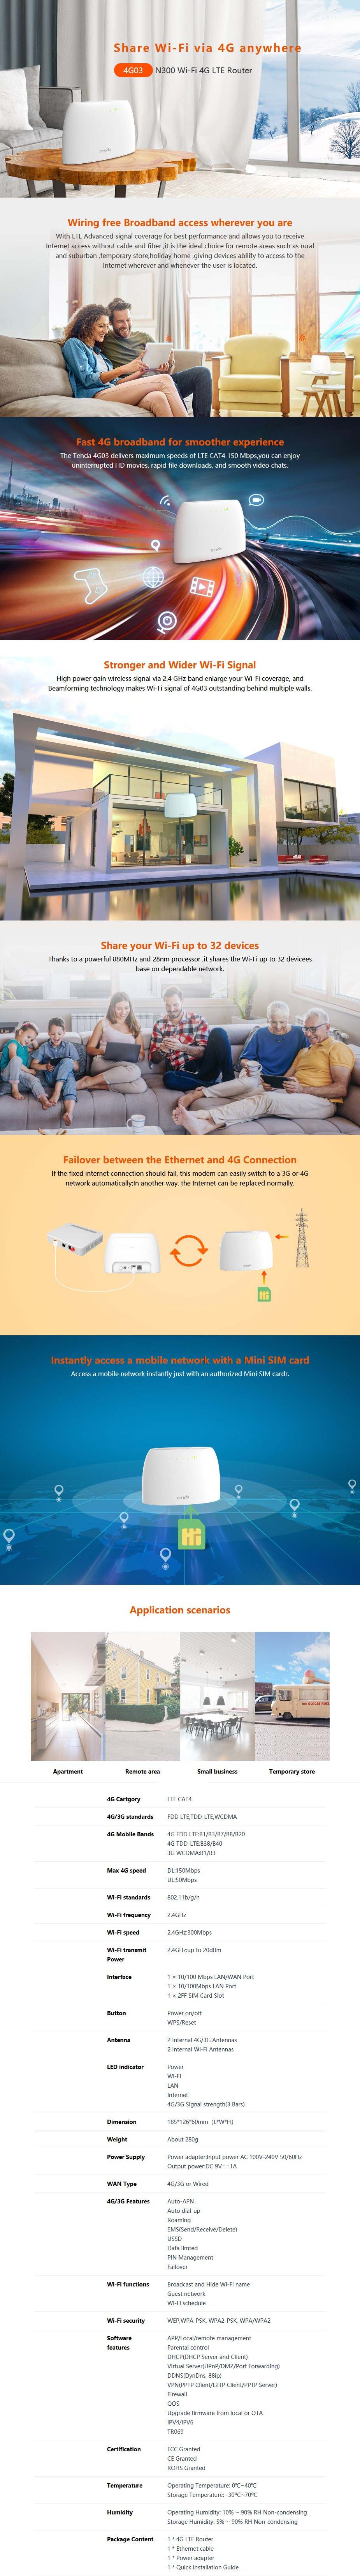 Tenda 4G03 3G/4G N300 Wi-Fi 4G LTE Router - Overview 1